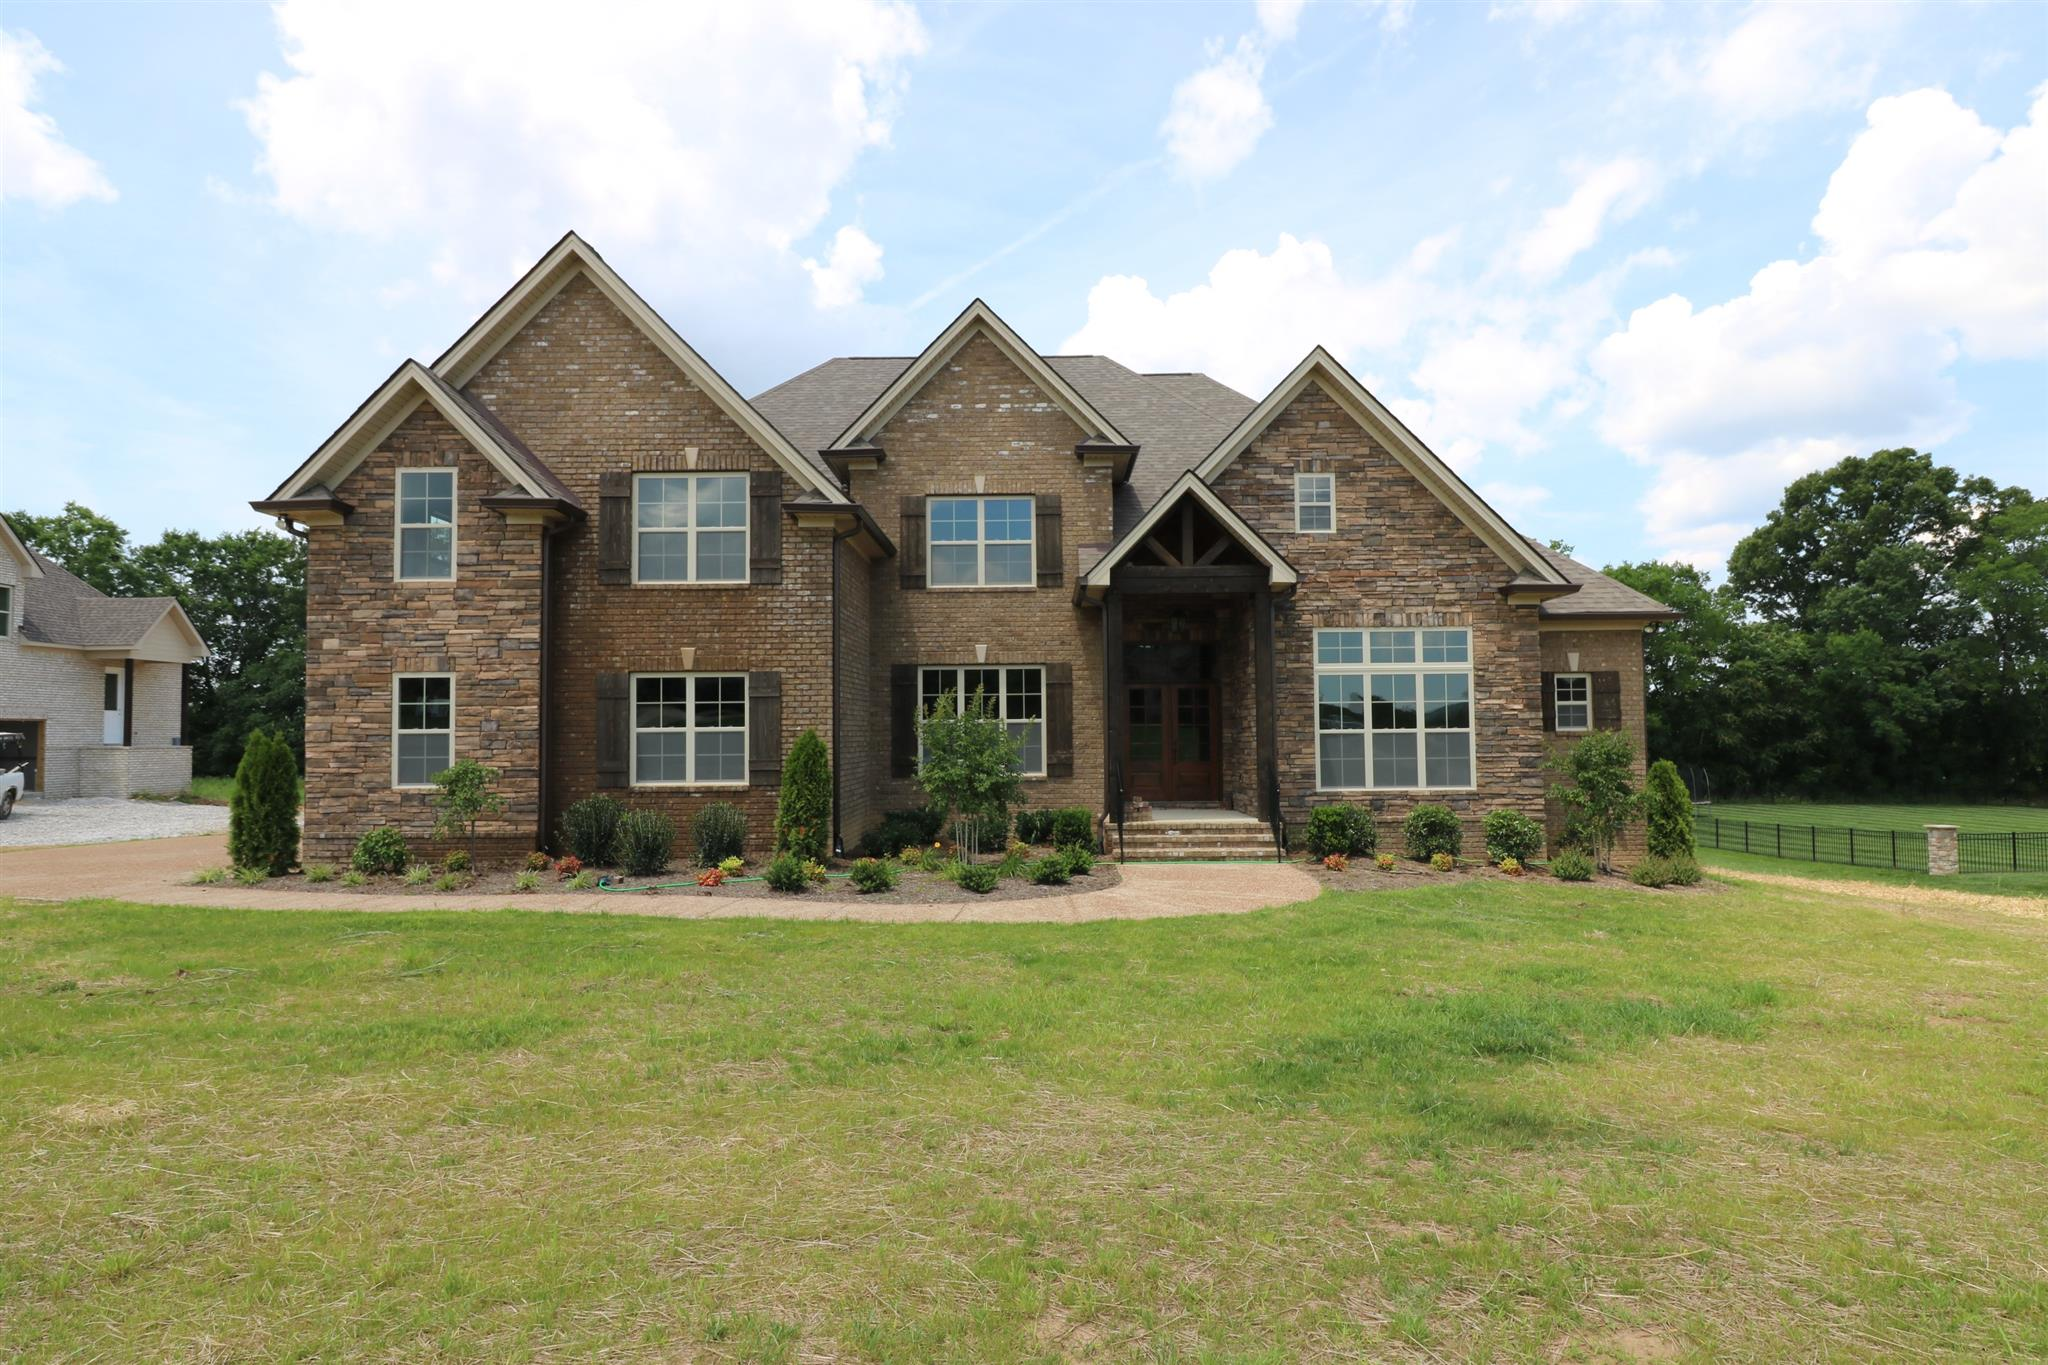 2111 Berry Patch Rd, Thompsons Station, TN 37179